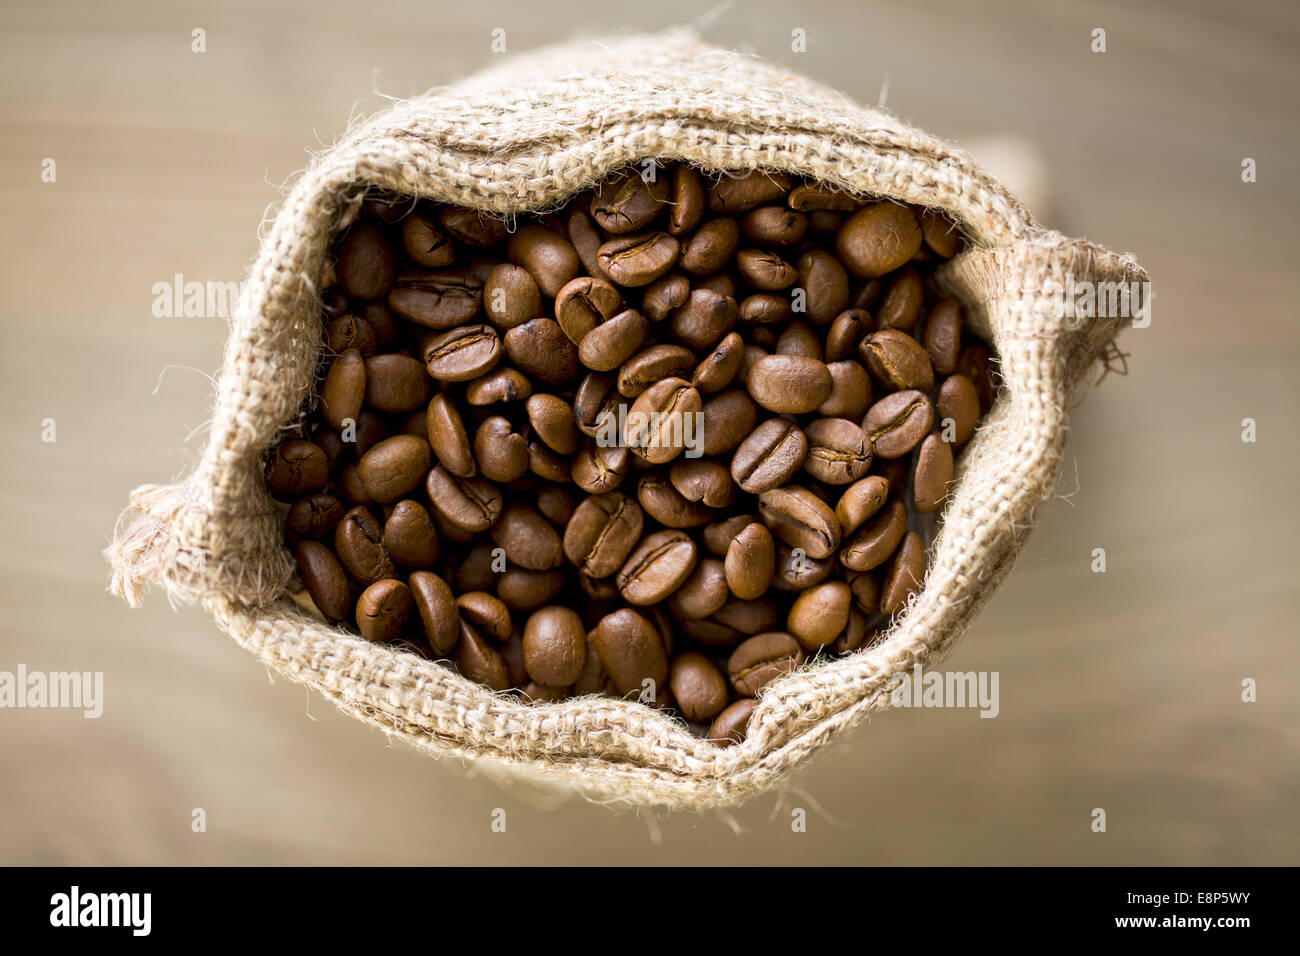 top view of coffee beans in burlap sack - Stock Image